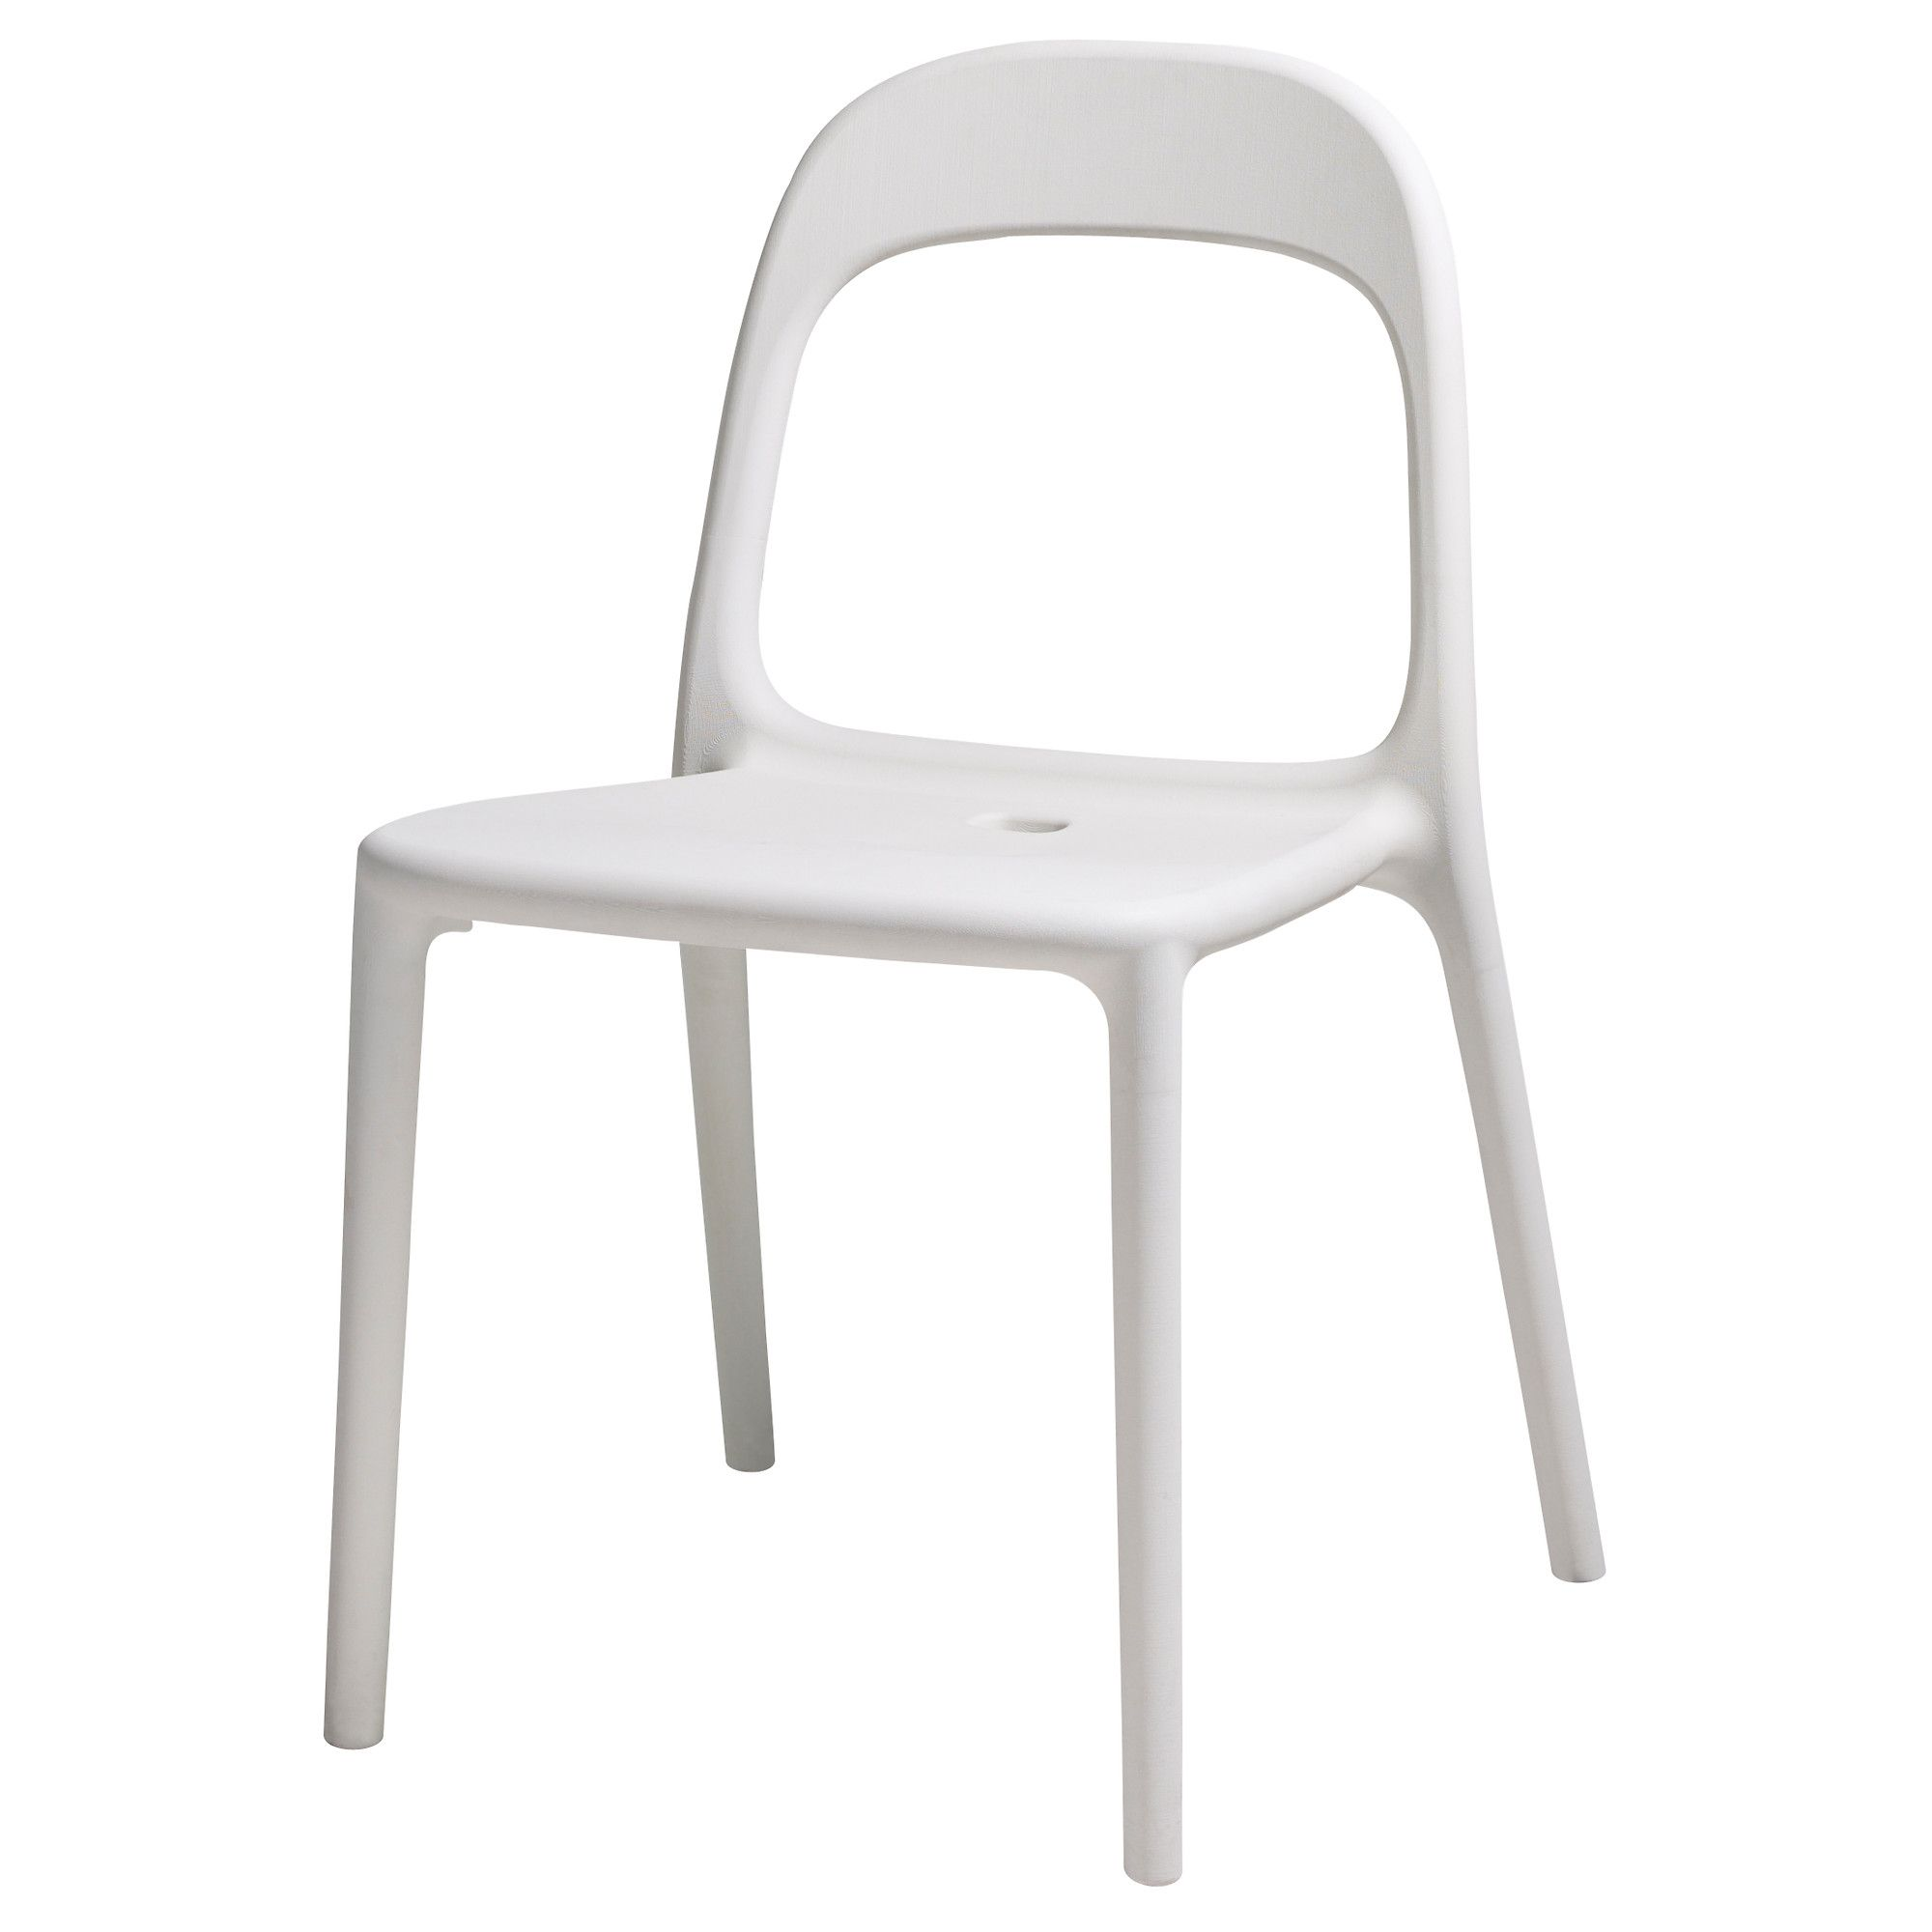 Still Love The Urban Chair At Ikea Could Be Great Patio Dining Chairs Light Blue Offered Is Kinda Pretty Too